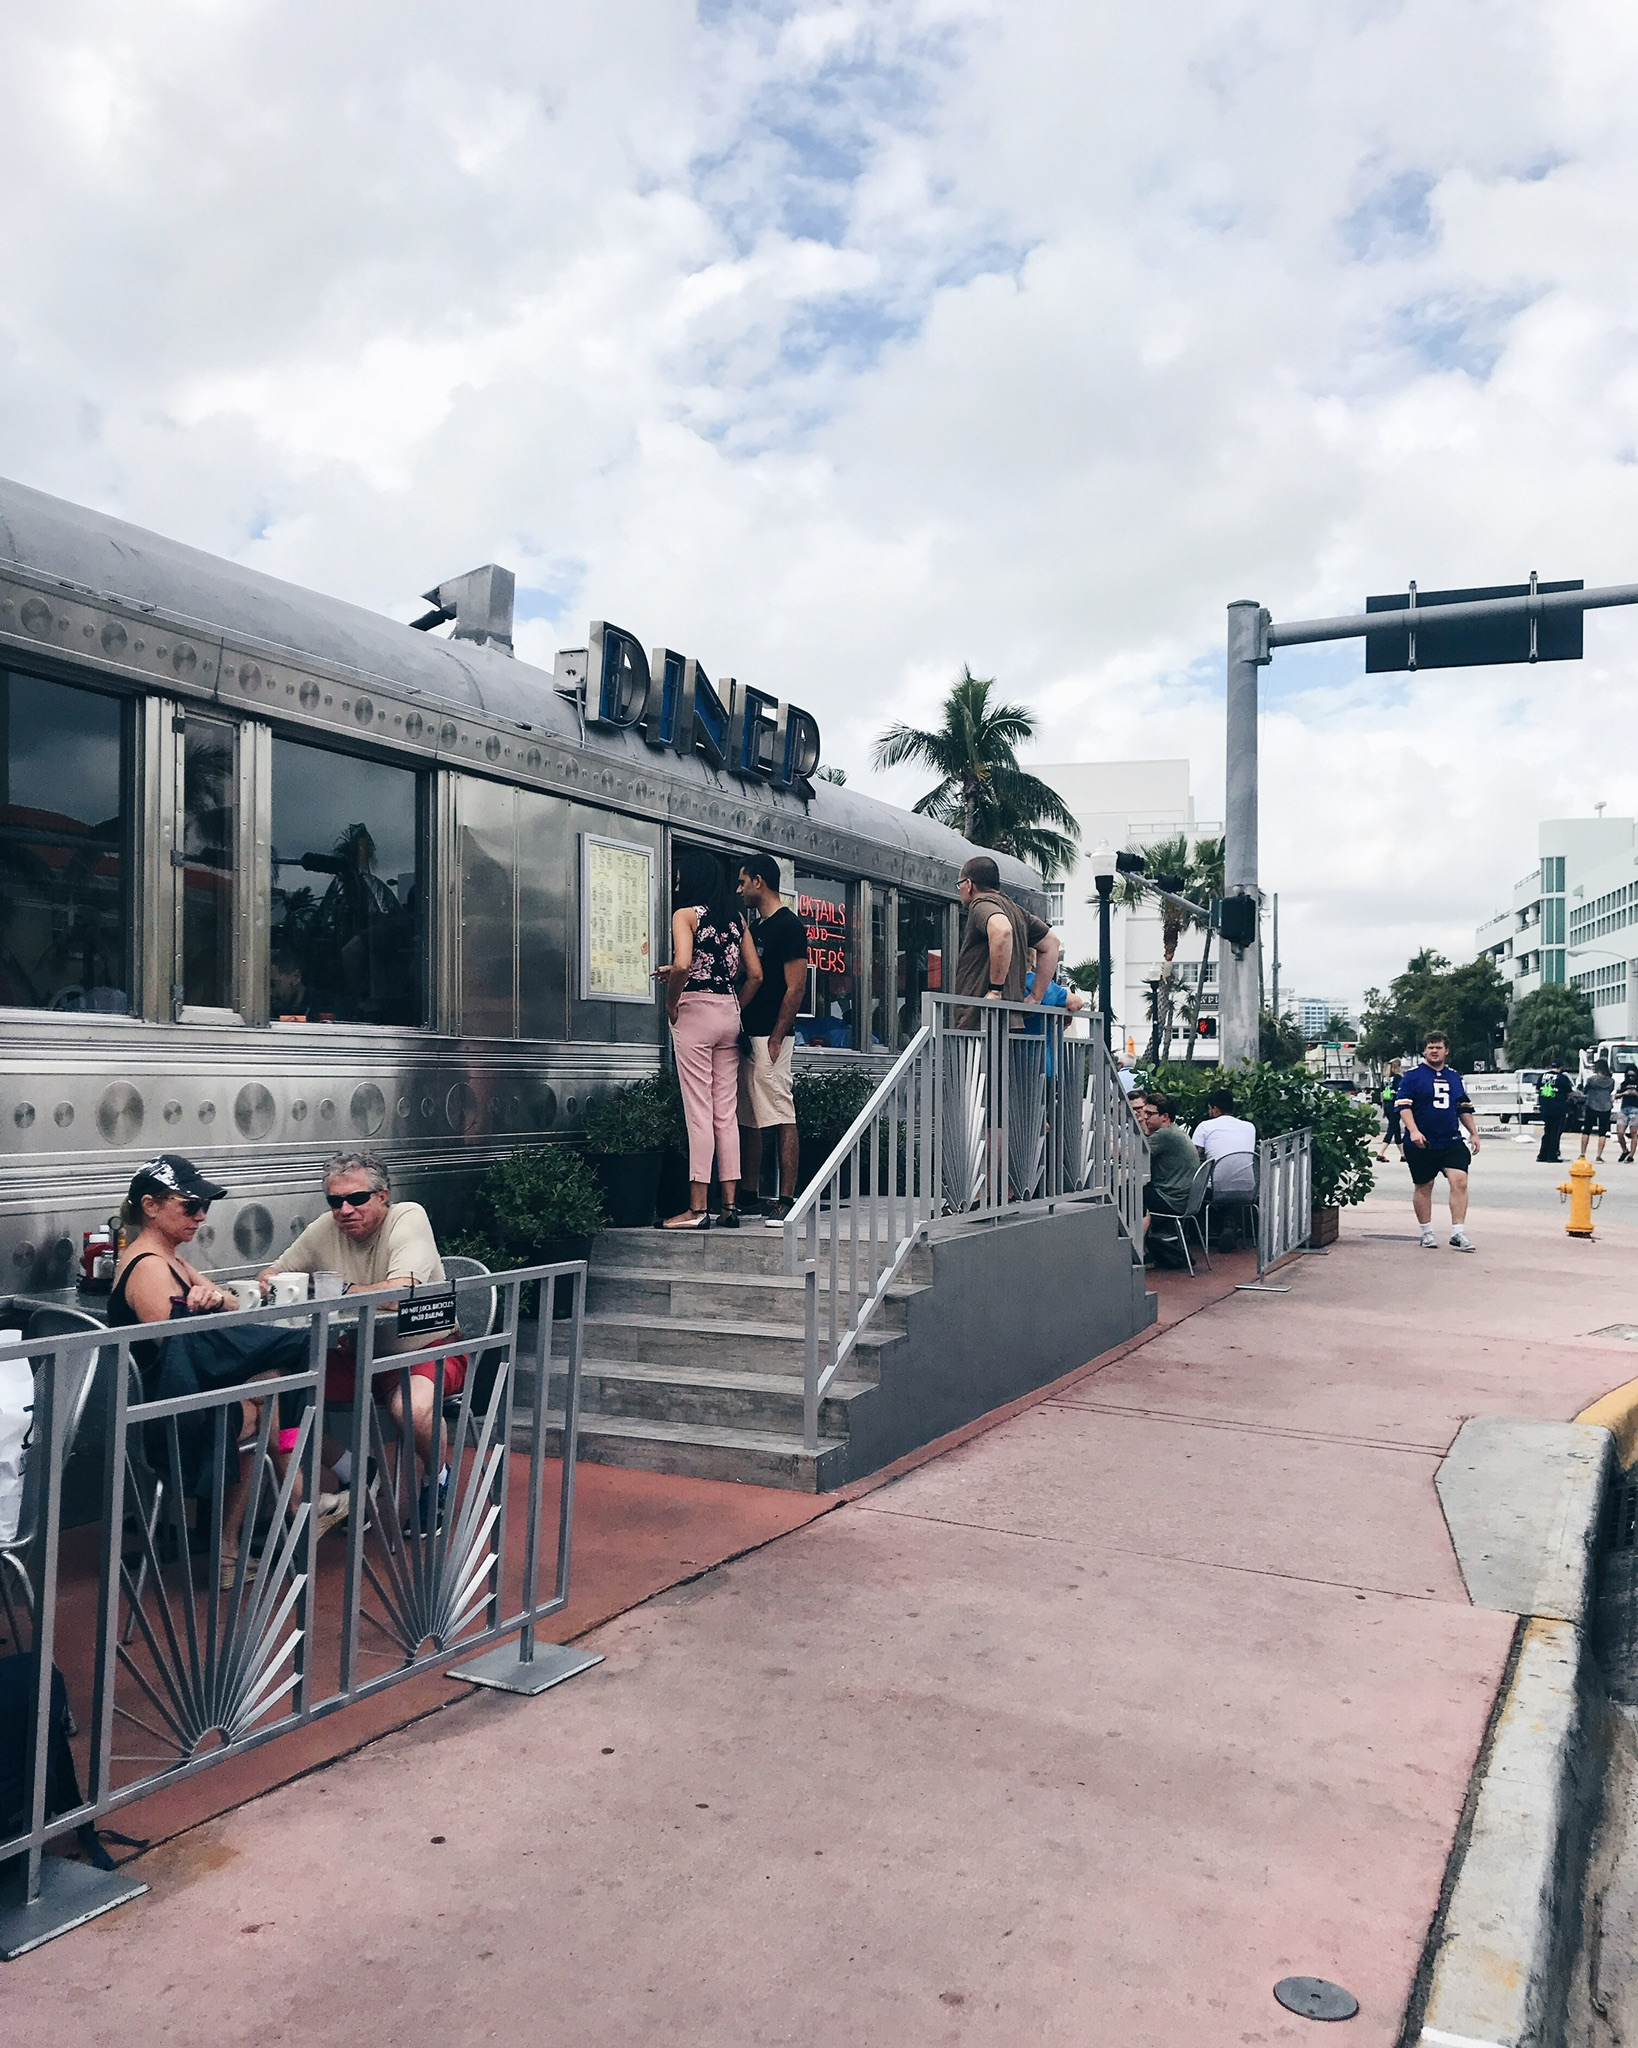 11th-street-diner-miami-life-with-aco-miami-recap-travel.jpg